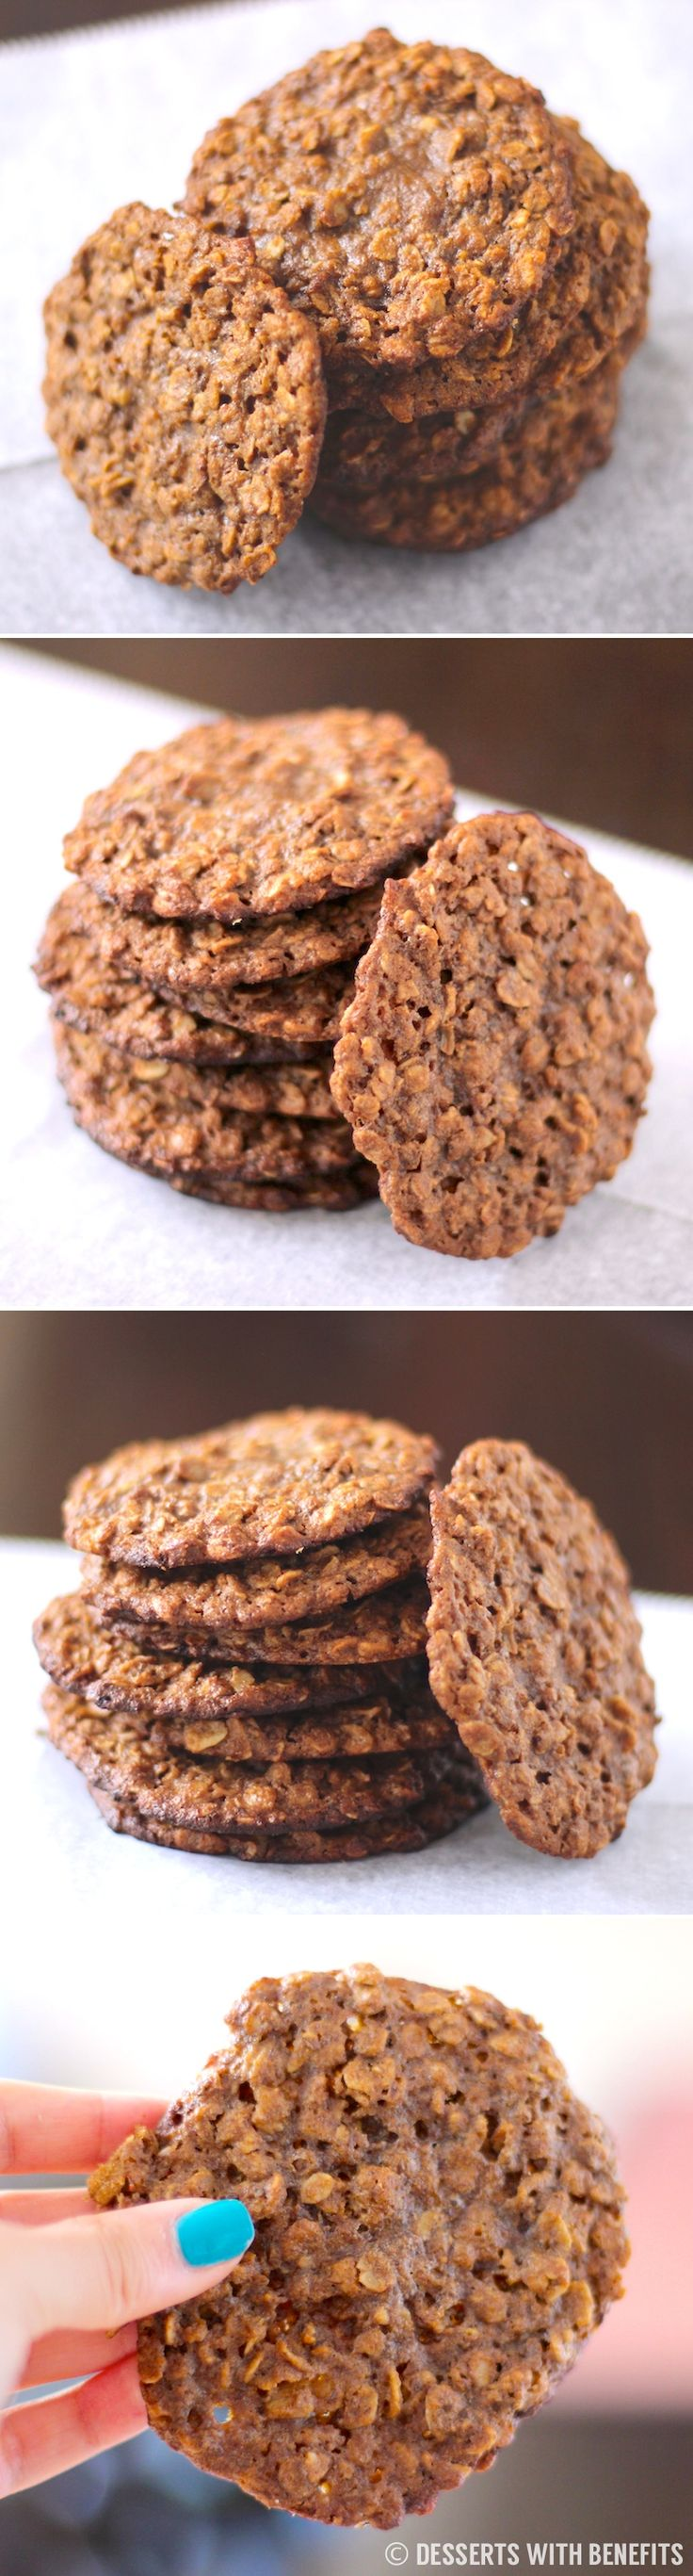 Chewy Peanut Butter Chocolate Chip Cookies Without Corn Syrup